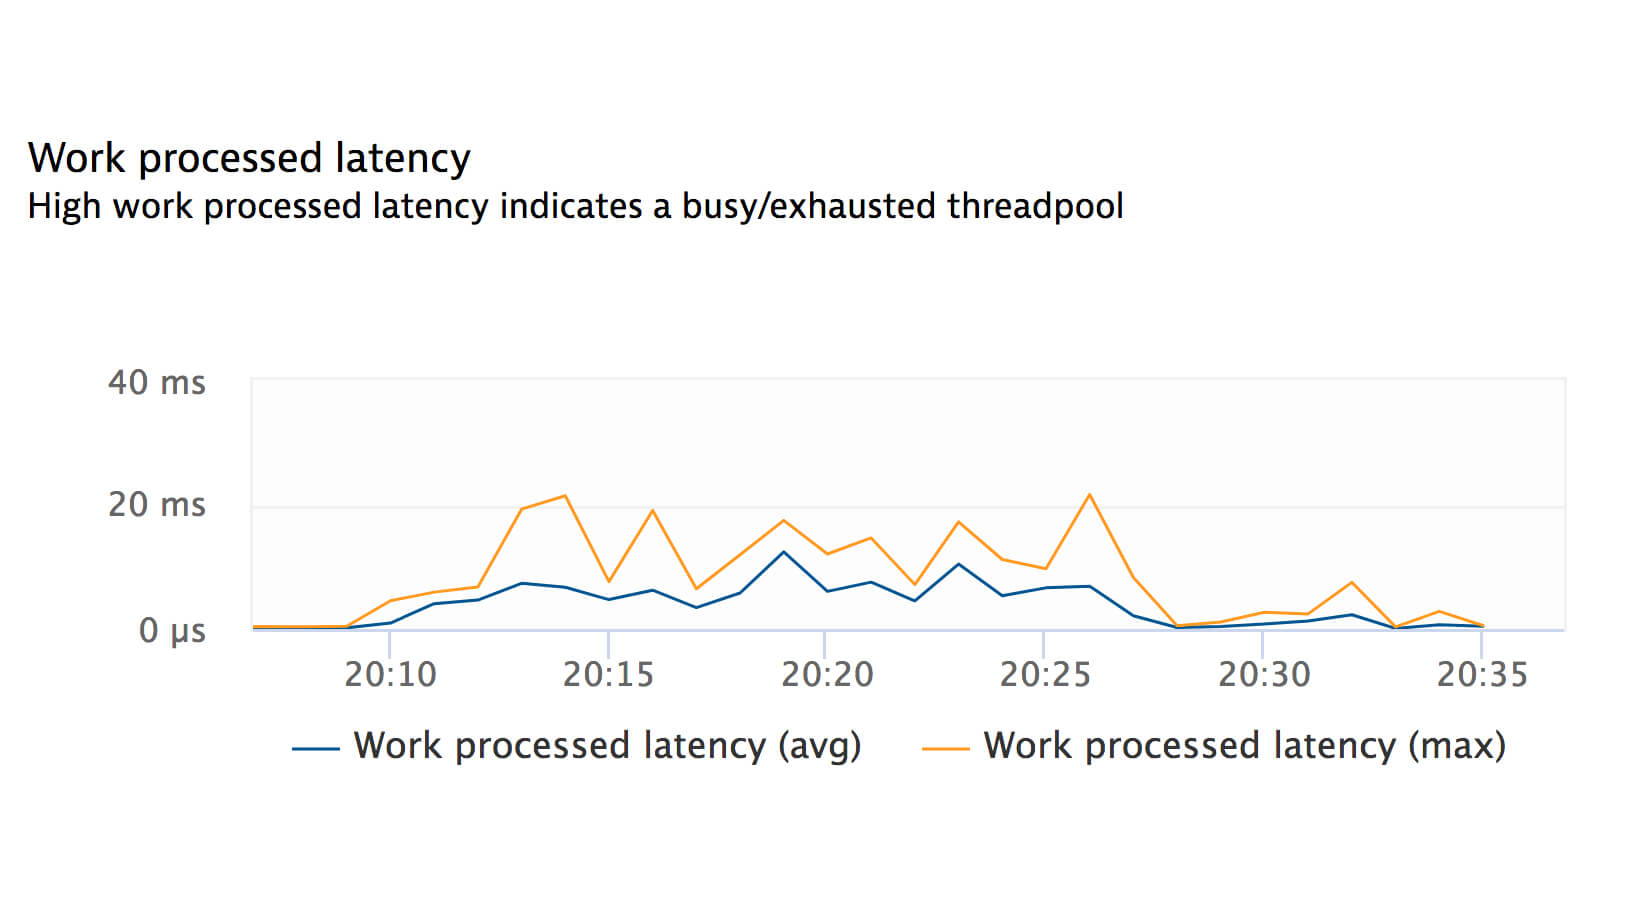 Work processed latency